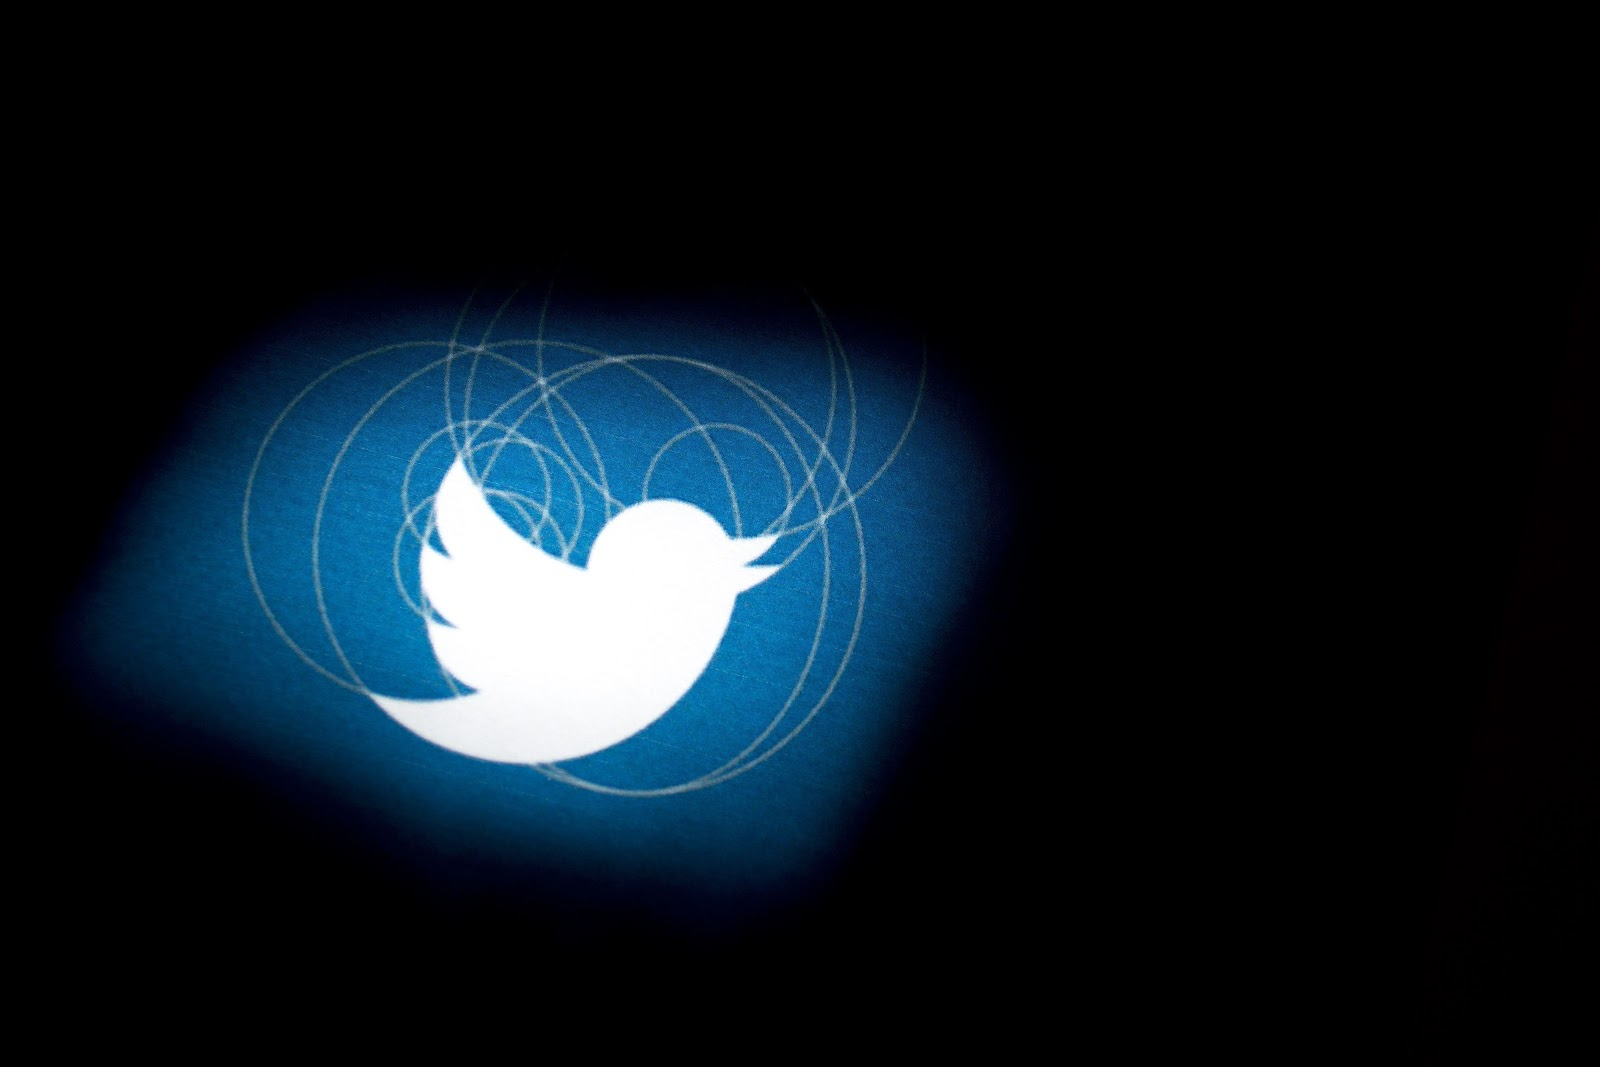 Twitter Suffers A Coordinated Cyber Attacks